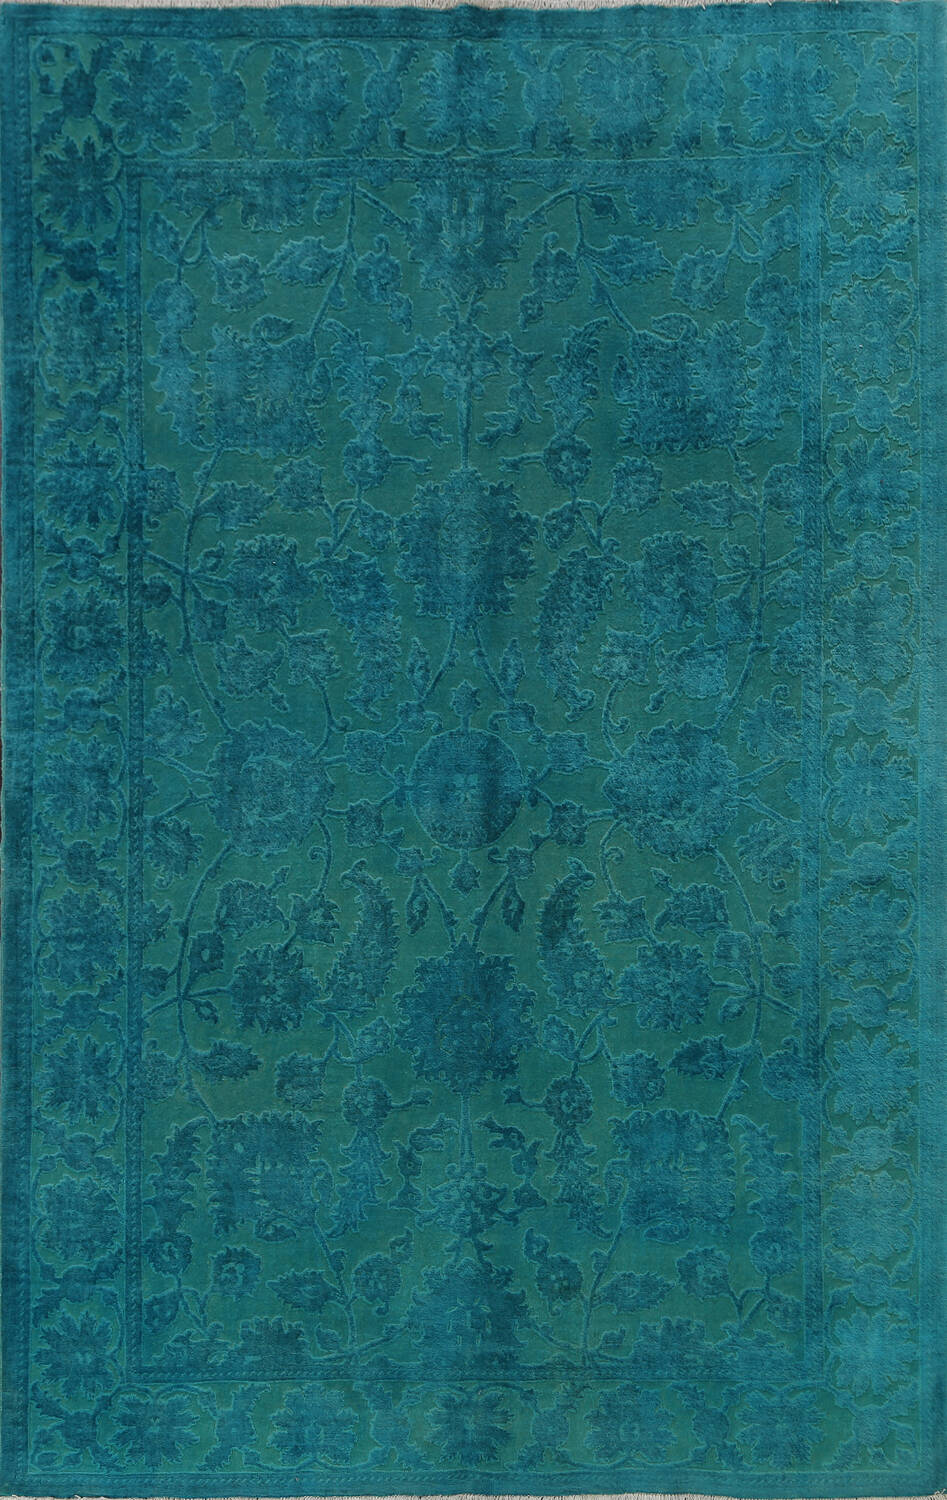 Vegetable Dye Carved Aqua Oushak Chobi Oriental Area Rug 6x9 image 1